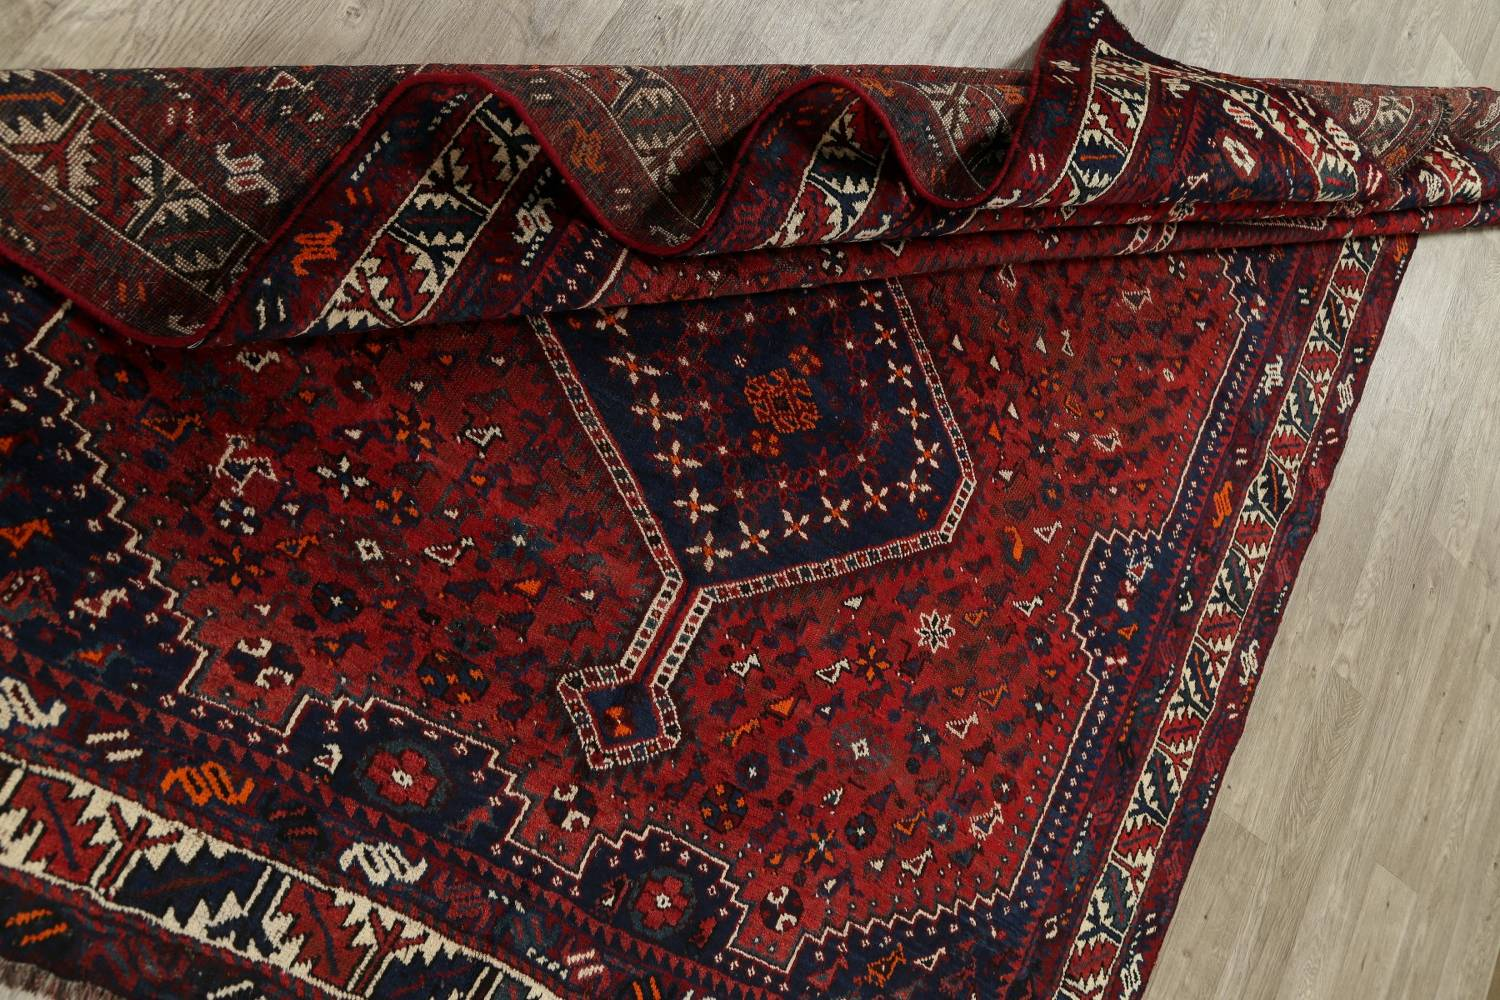 Antique Tribal Qashqai Persian Hand-Knotted 7x10 Wool Area Rug image 16